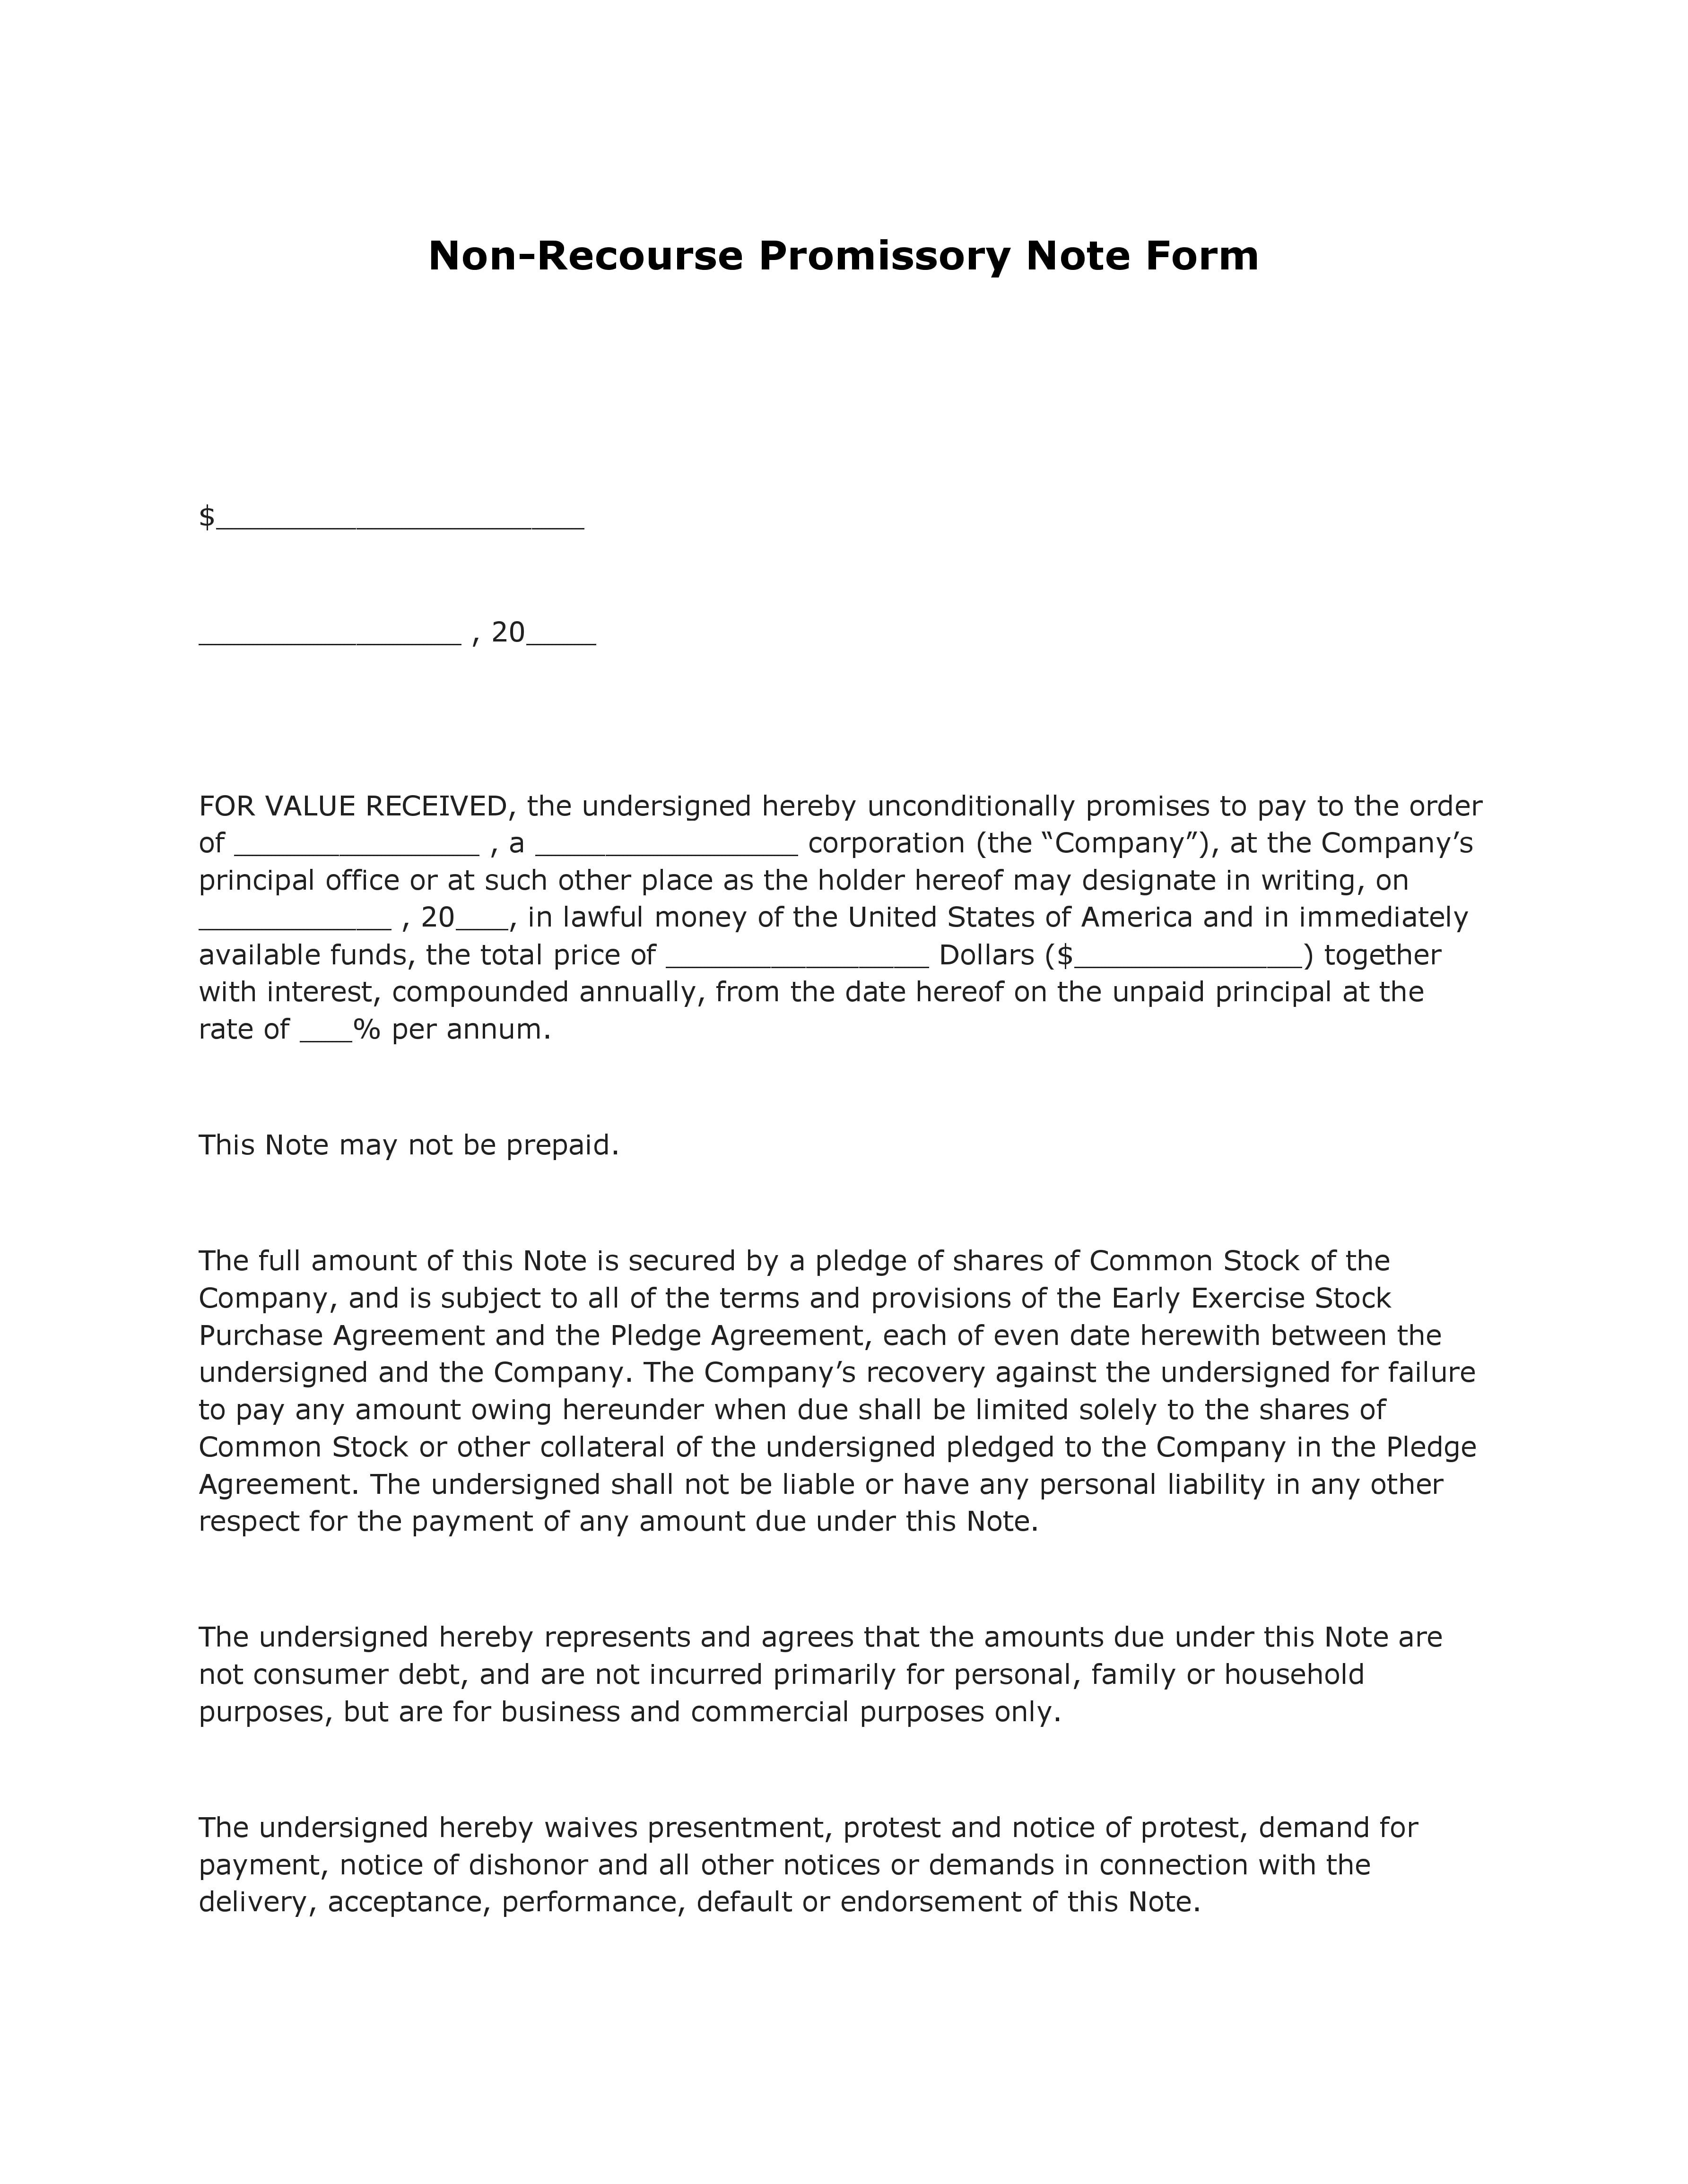 Free Nonrecourse Promissory Note Form  Pdf Template  Form Download With Non Recourse Loan Agreement Template